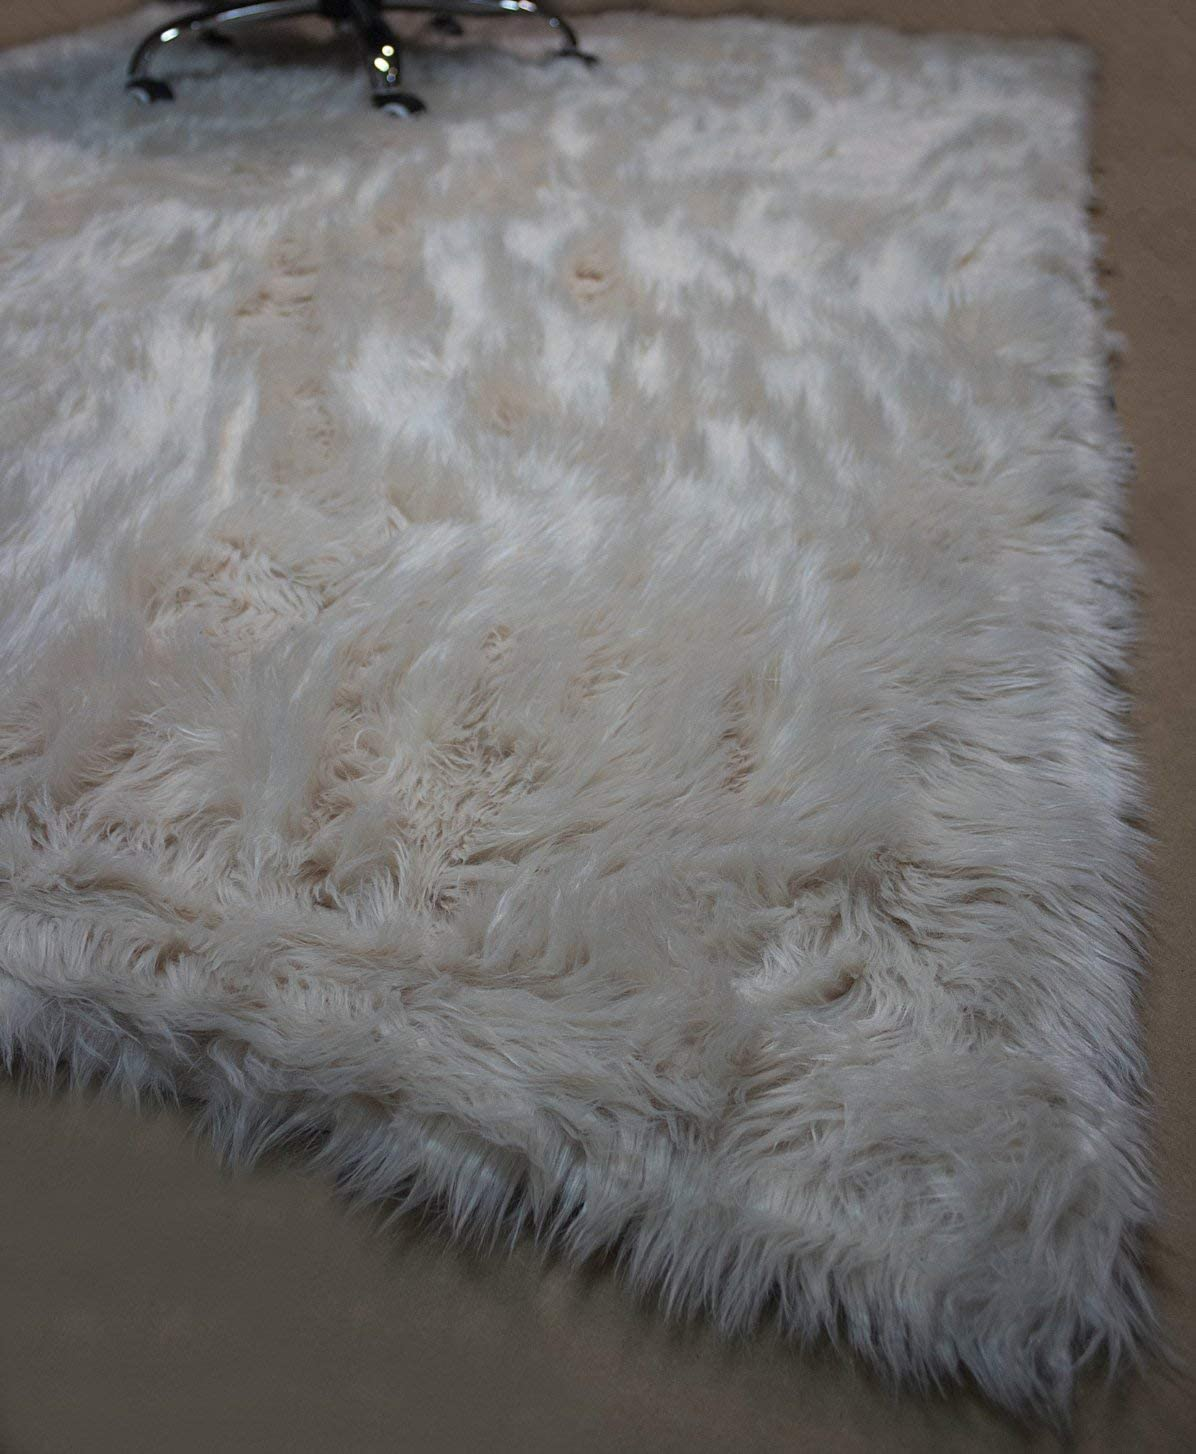 5×7 Feet Beige Cream Color Faux Imitation Quality Sheepskin Sheep Skin Sheep Hide Animal Skin Fur Furry Area Rug Carpet Rug Solid Plush Decorative Designer Modern Contemporary Bedroom Living Room